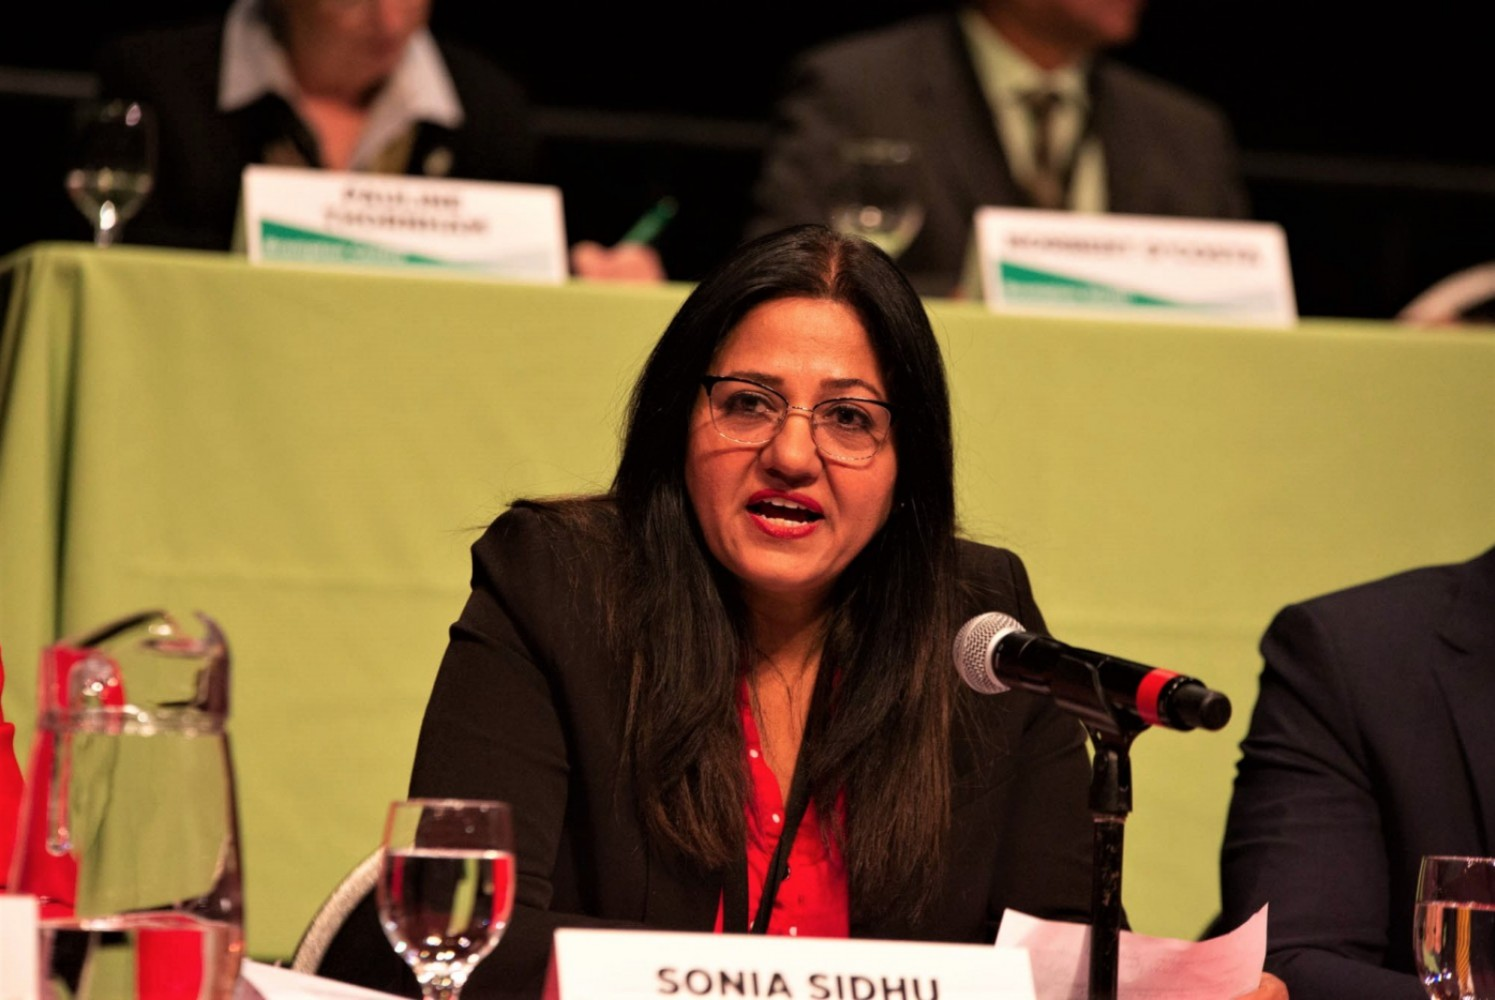 Sonia Sidhu advocated on health-related issues in Ottawa, but was quiet beyond that